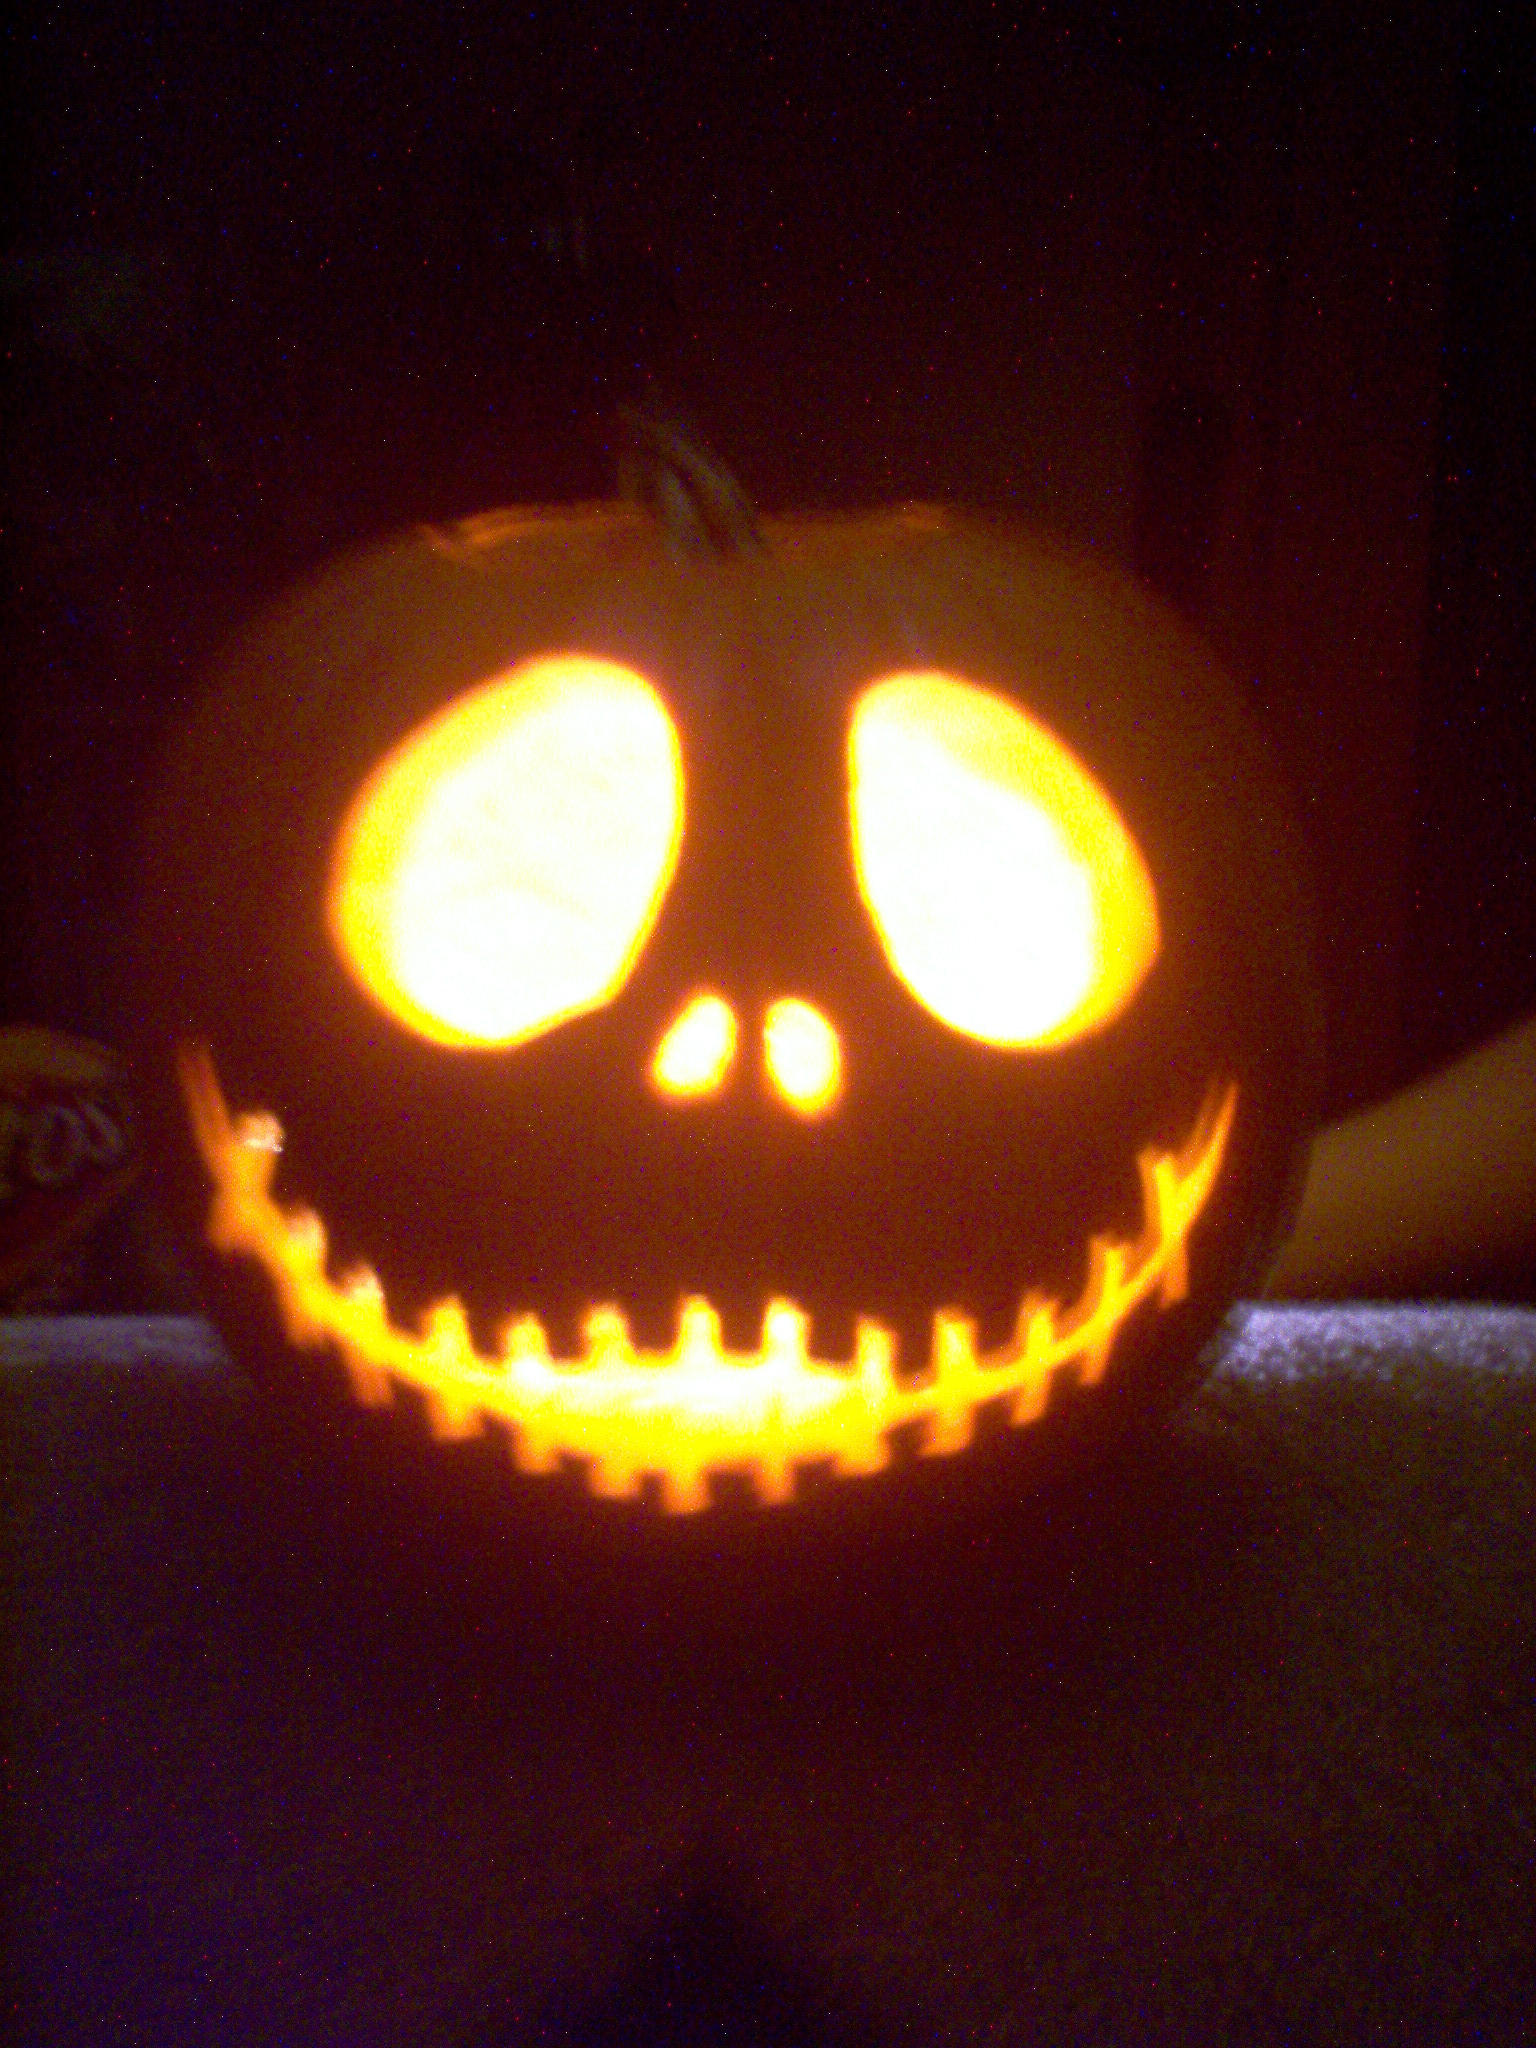 Jack skellington pumpkin by cinderspritzer on deviantart for Pumpkin carving patterns printable jack skellington